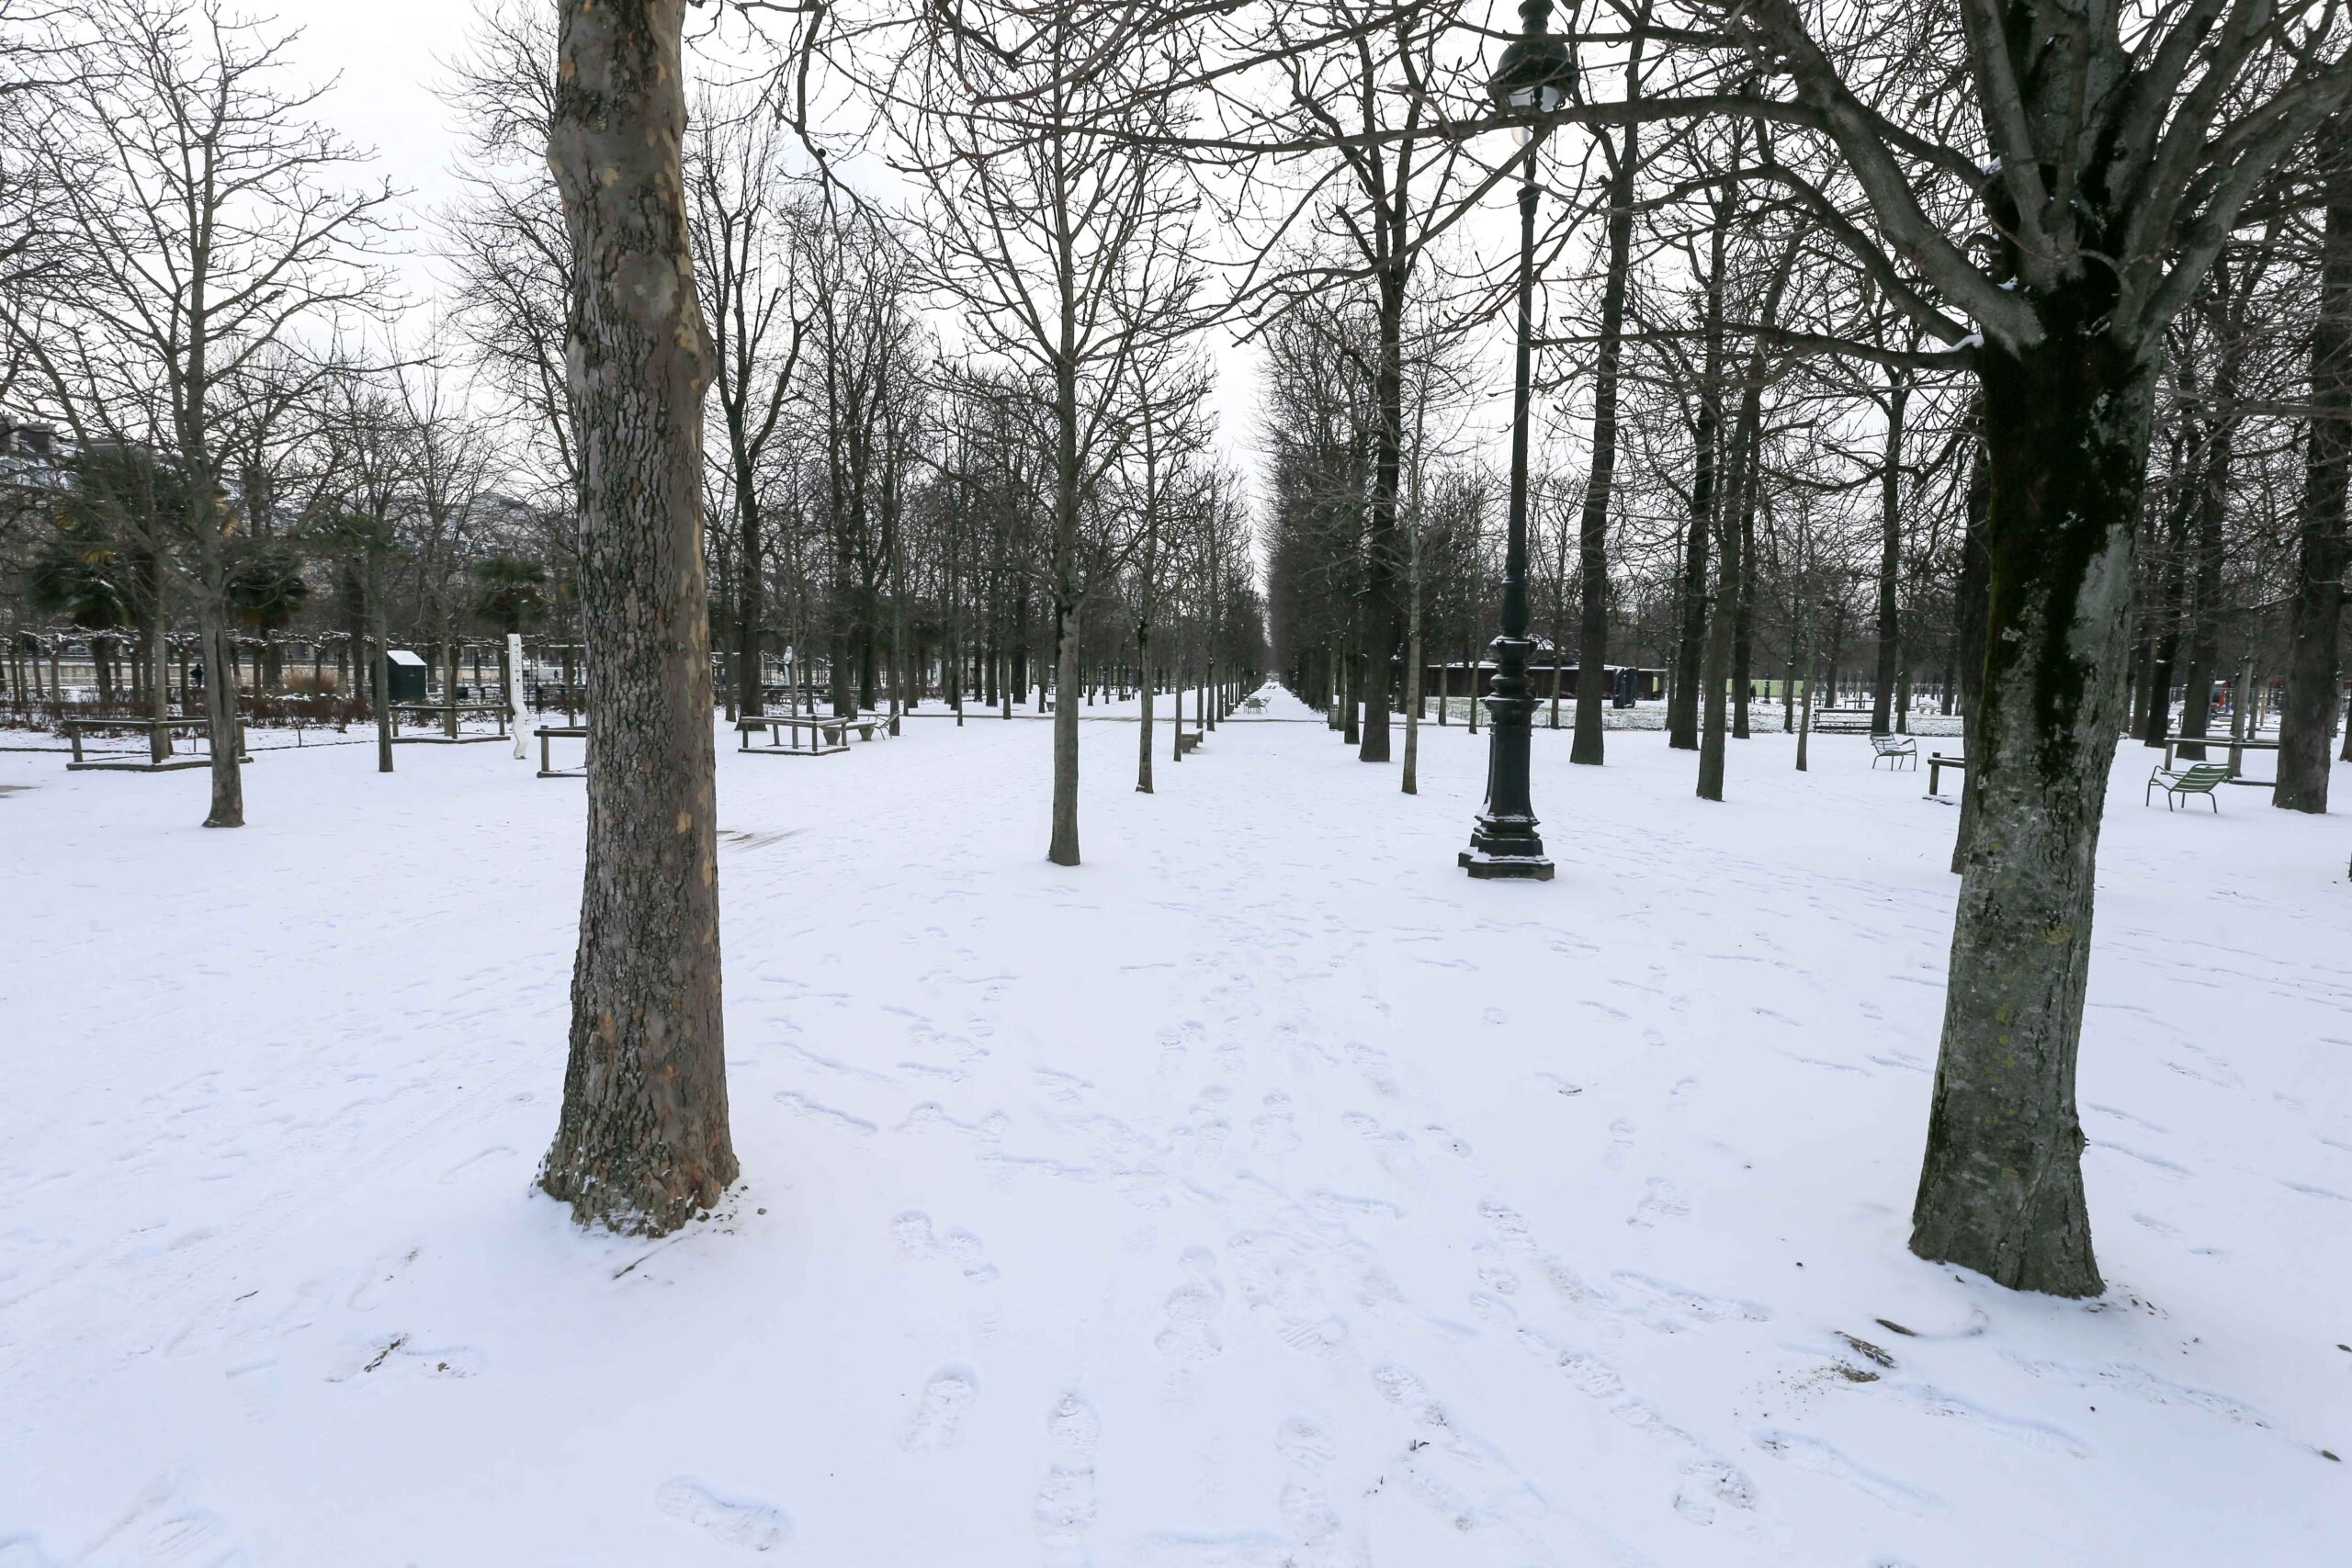 The Tuileries garden, in Paris, is covered in snow on February 10, 2021, following an overnight snowfall. In parts of the Paris region authorities cancelled school buses and urged parents to keep children at home. The city of Paris has opened gymnasiums to